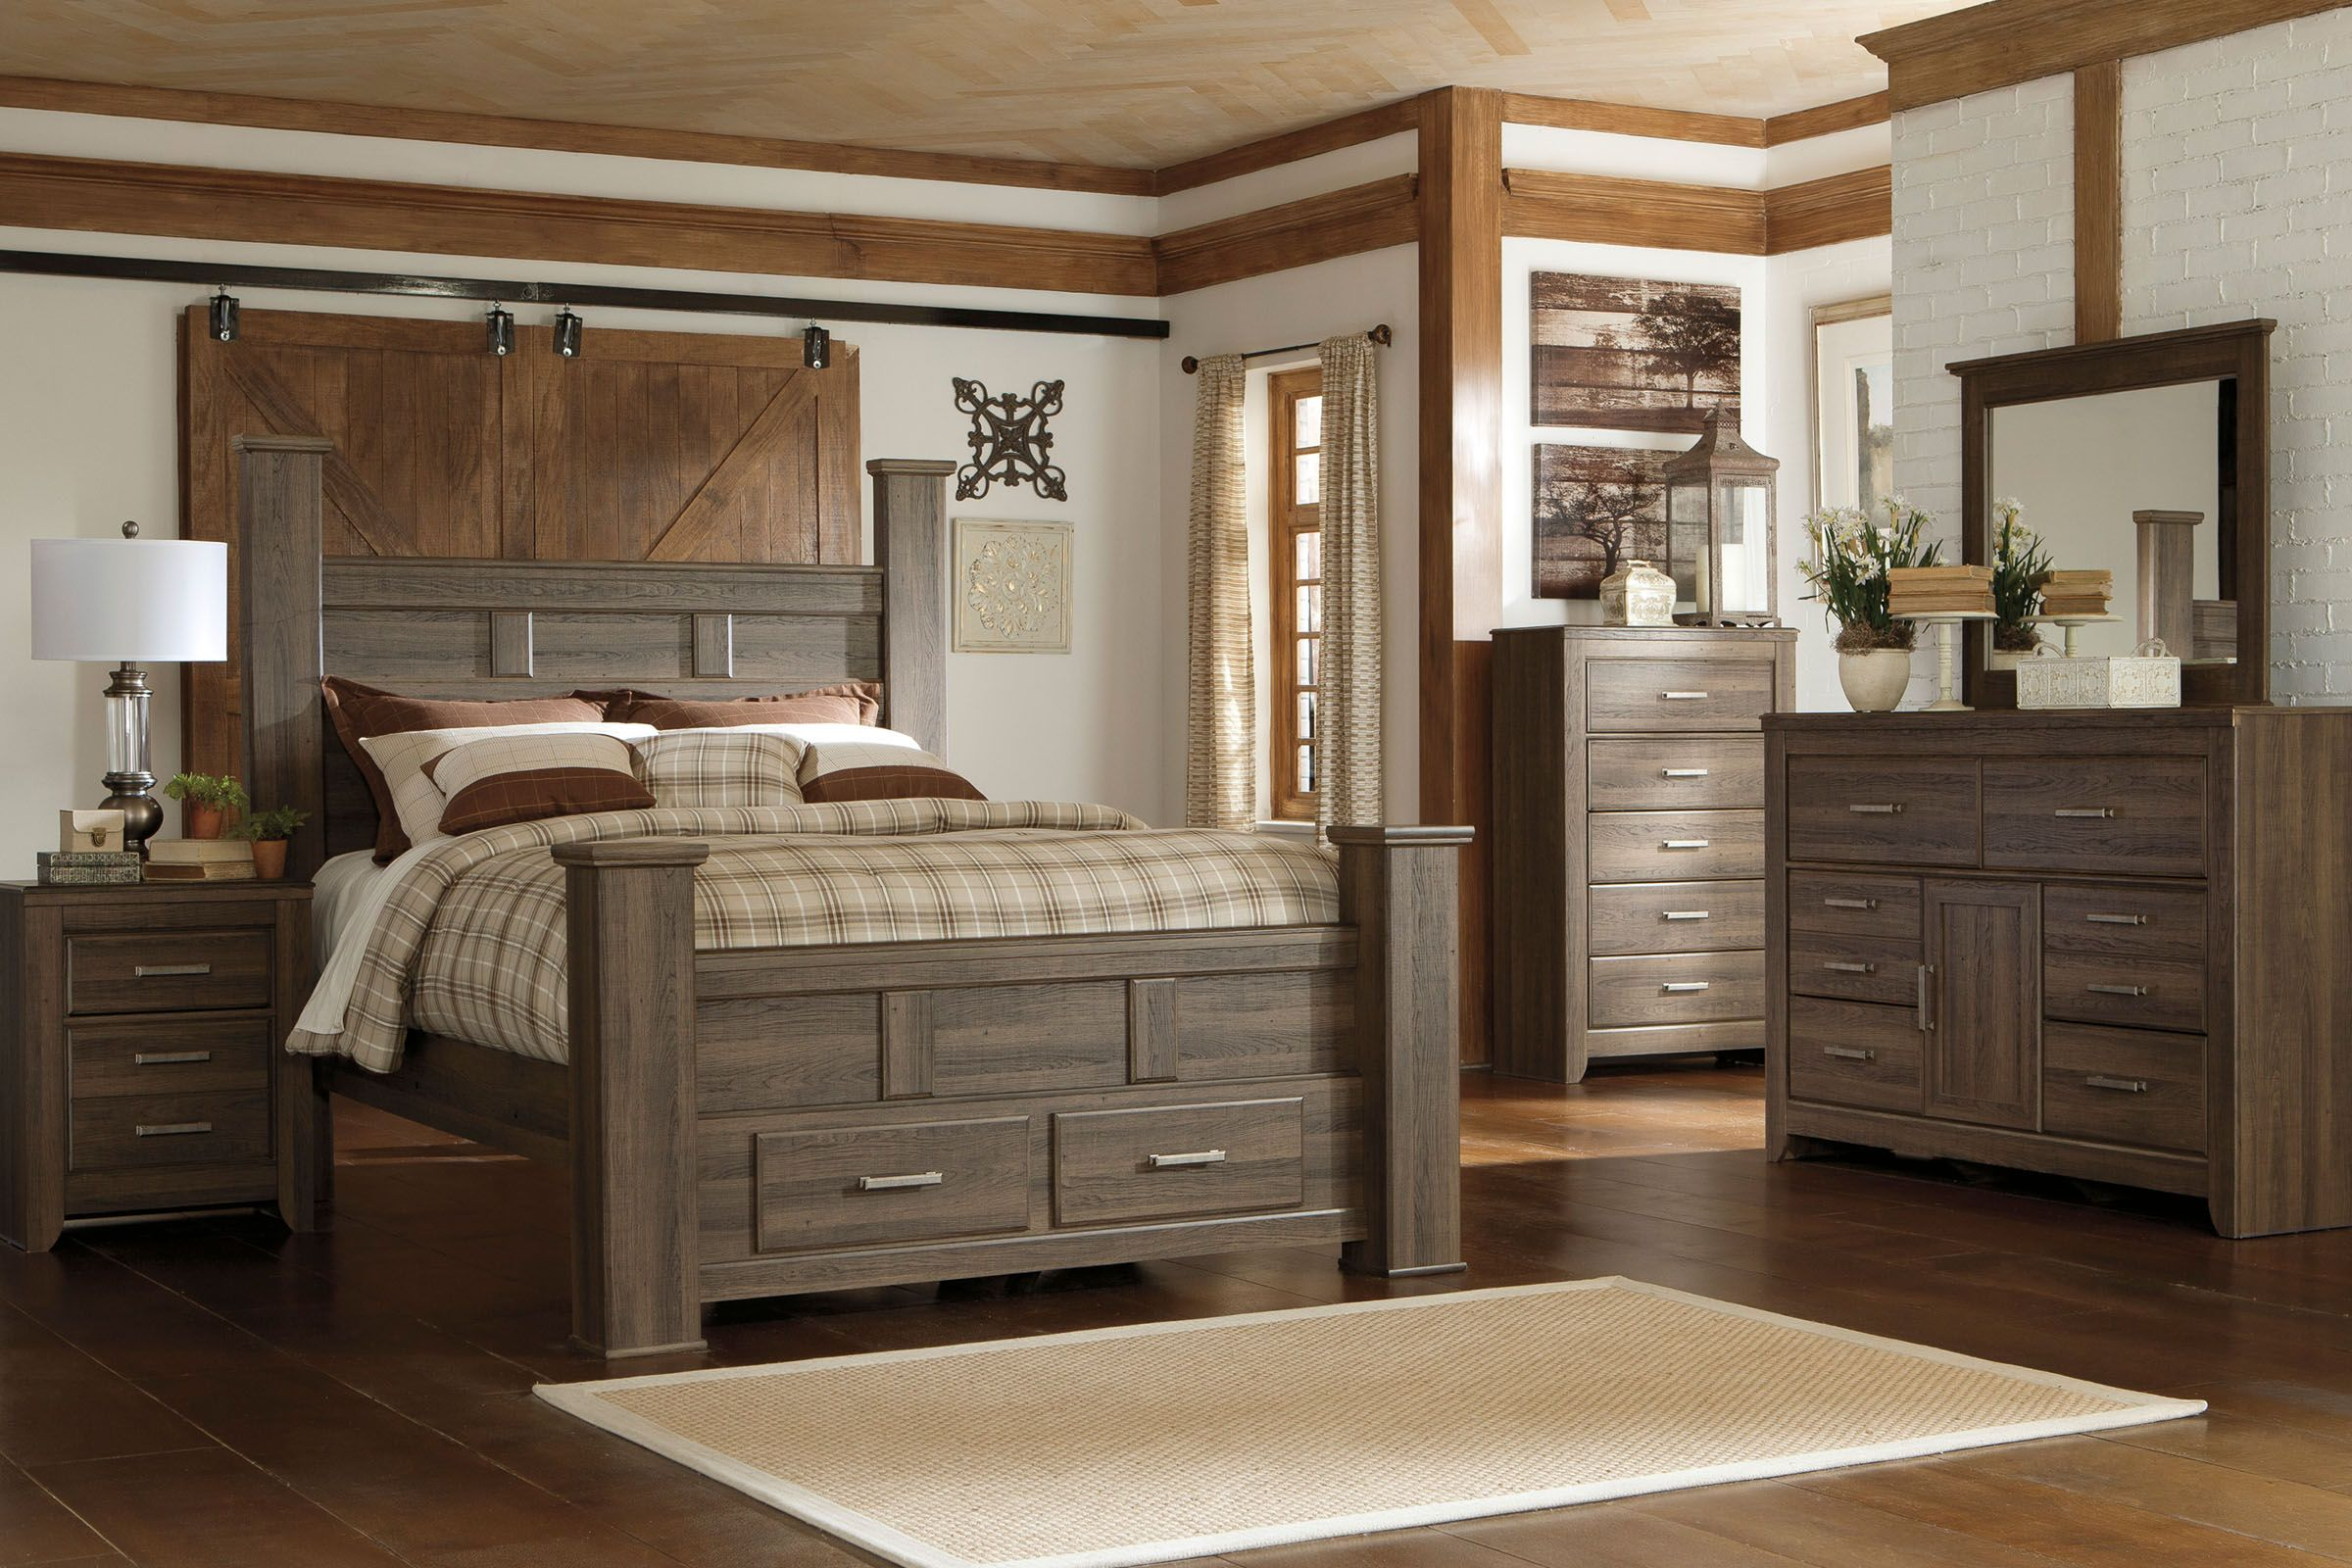 Bedroom Furniture with Extras